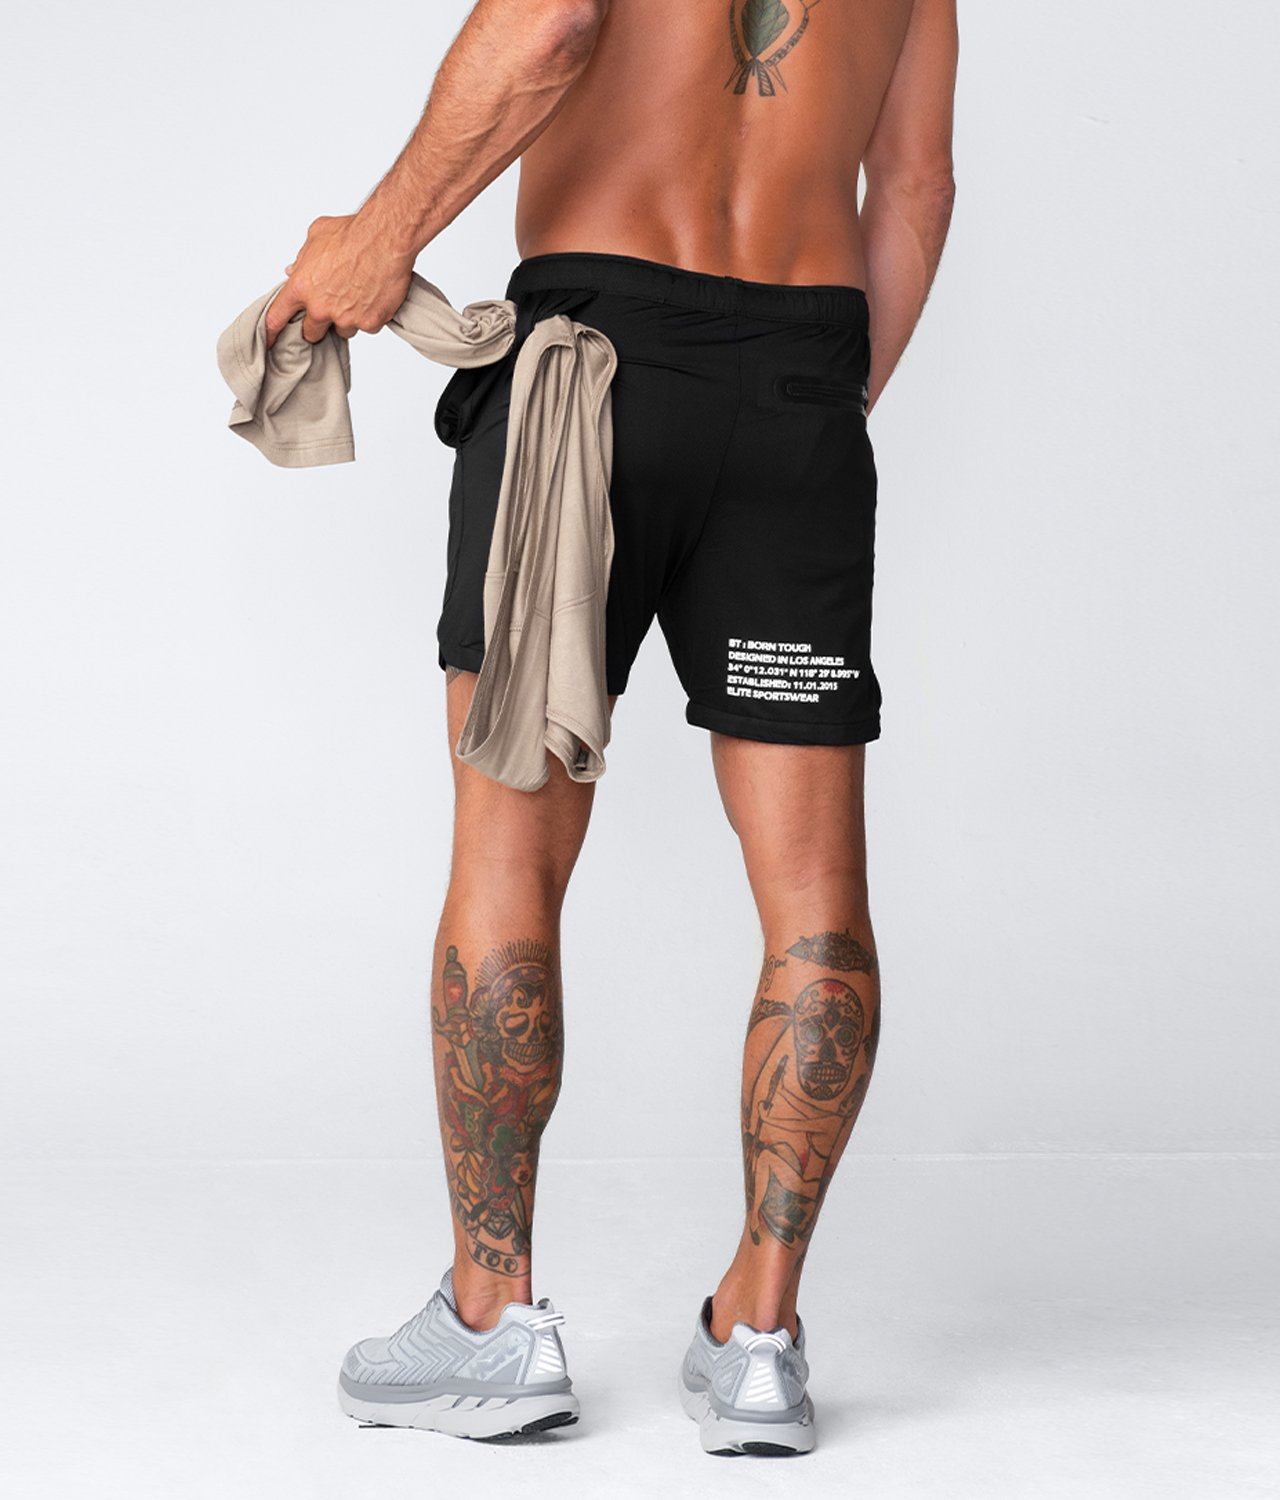 "Born Tough United Kingdom Air Pro™ 7"" Waist-Looped Ink Black Men's Gym Workout Shorts with Liner"